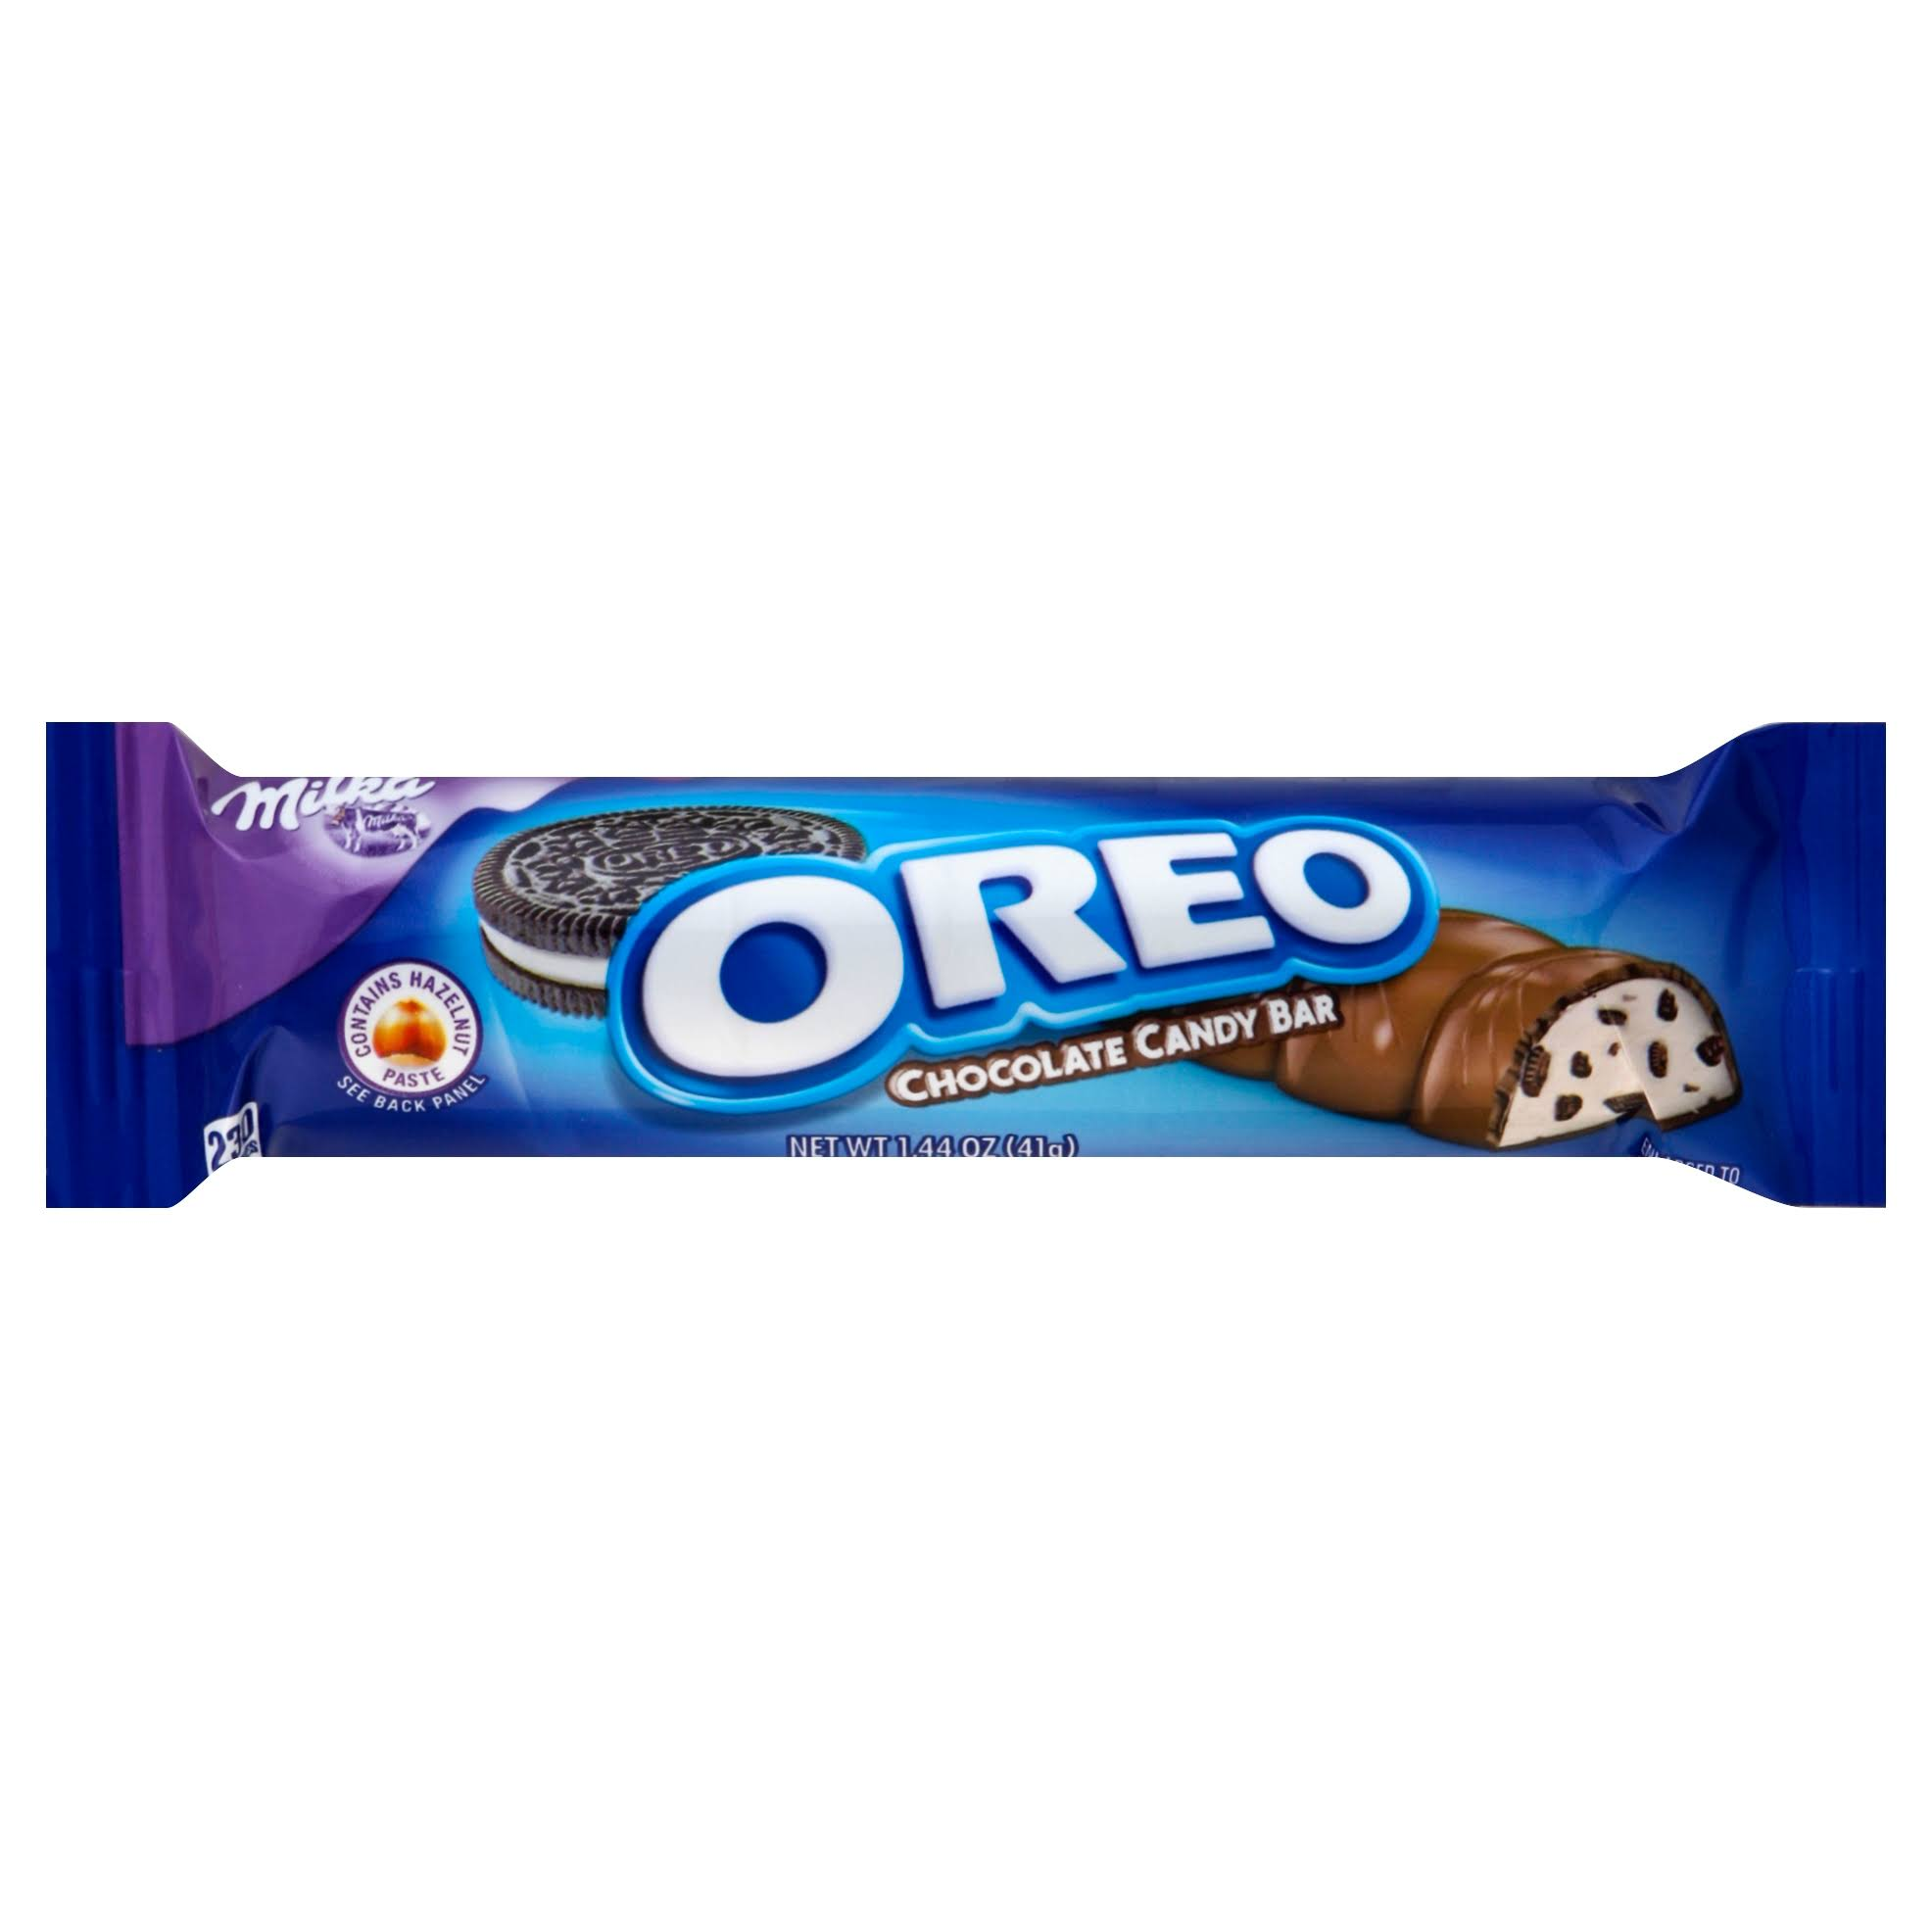 Oreo Chocolate Candy Bar - 1.44oz